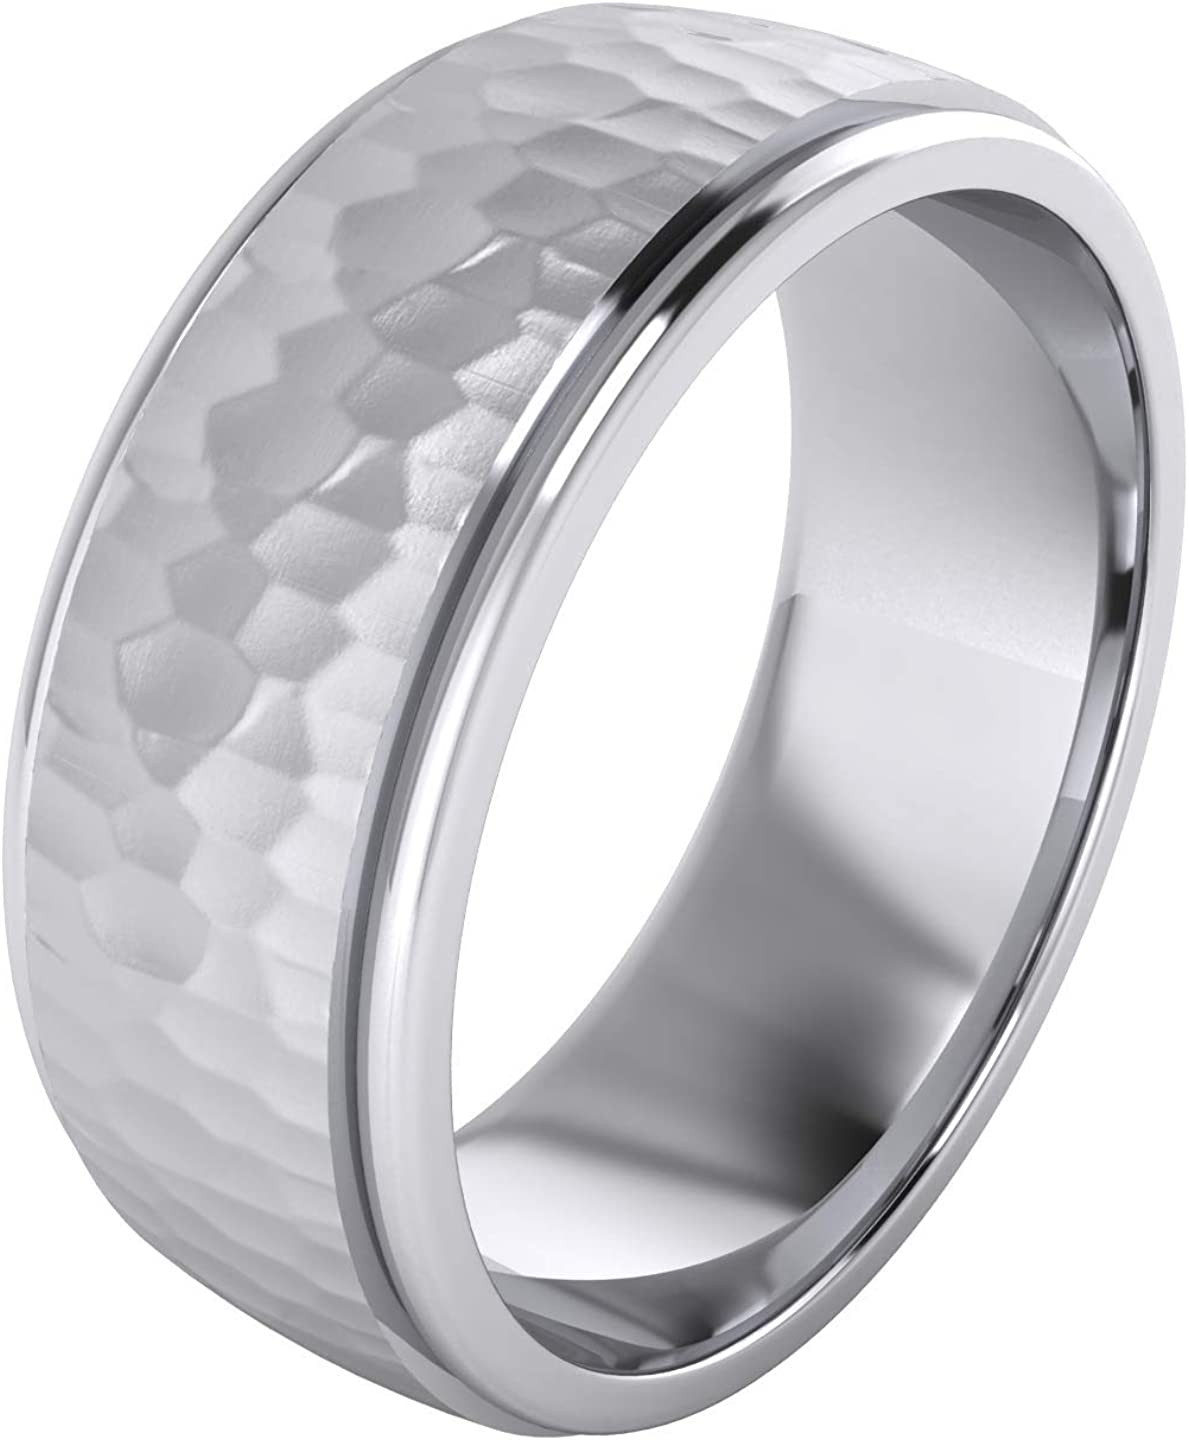 Heavy Solid Sterling 特売 早割クーポン Silver 6mm 8mm Wedding Unisex and Hammered